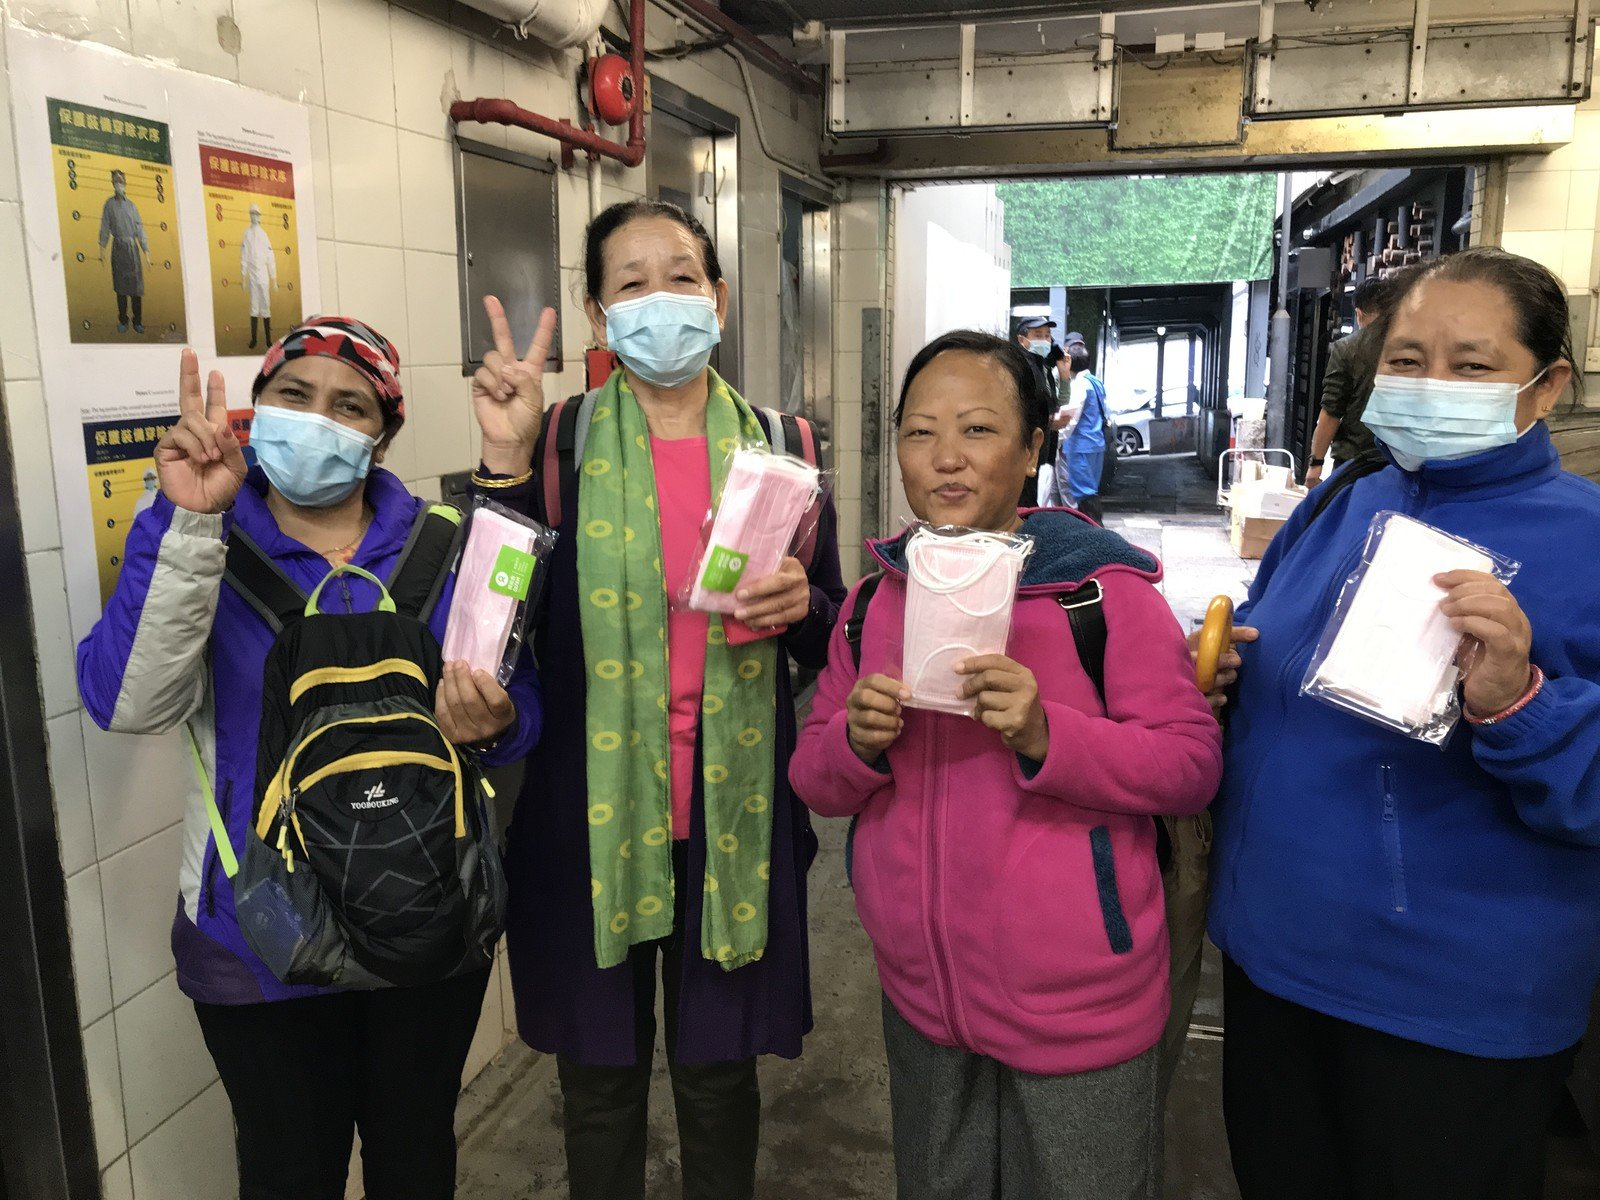 According to the Cleaning Workers' Union, an estimated 20 per cent of outsourced government cleaners are ethnic minorities, and many of them are Nepalese. Oxfam Hong Kong staff recently distributed masks at the Lan Kwai Fong Refuse Collection point; most of the cleaners there were Nepalese women.